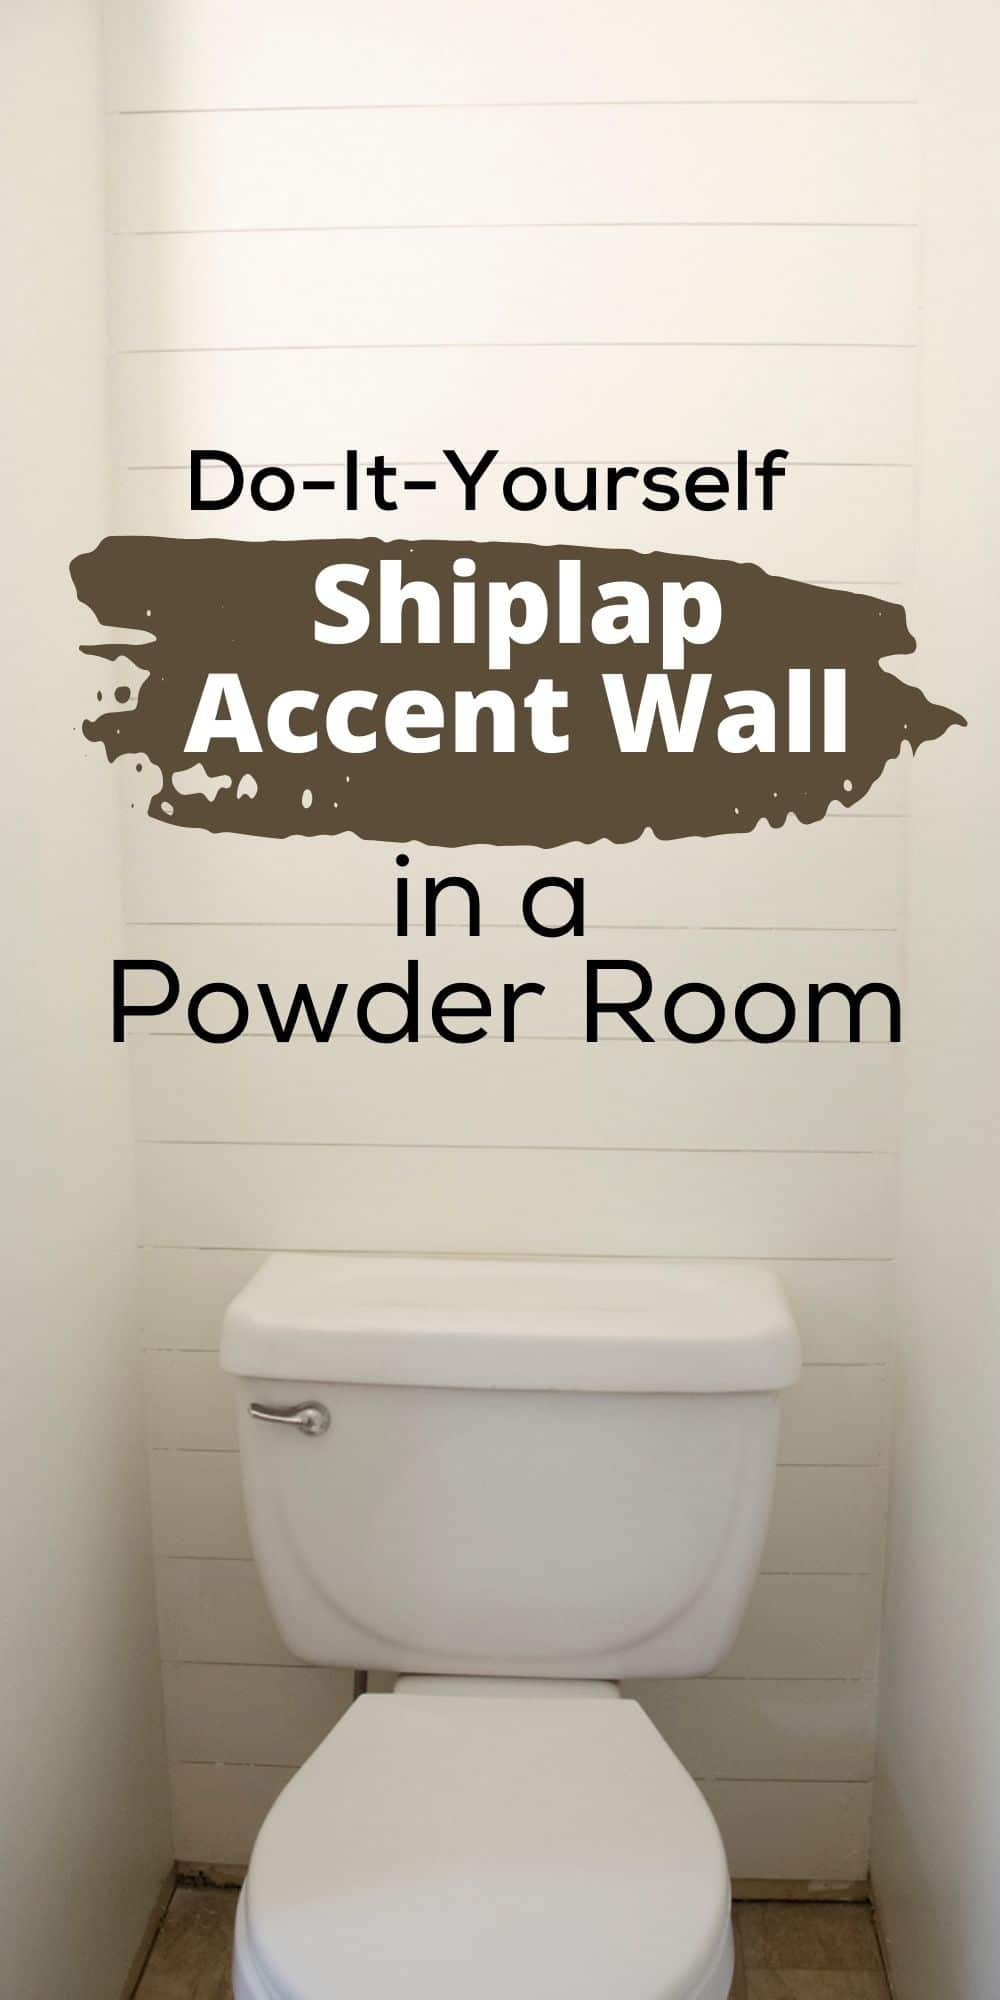 Shiplap accent wall in a powder room bathroom with a toilet in front of it.